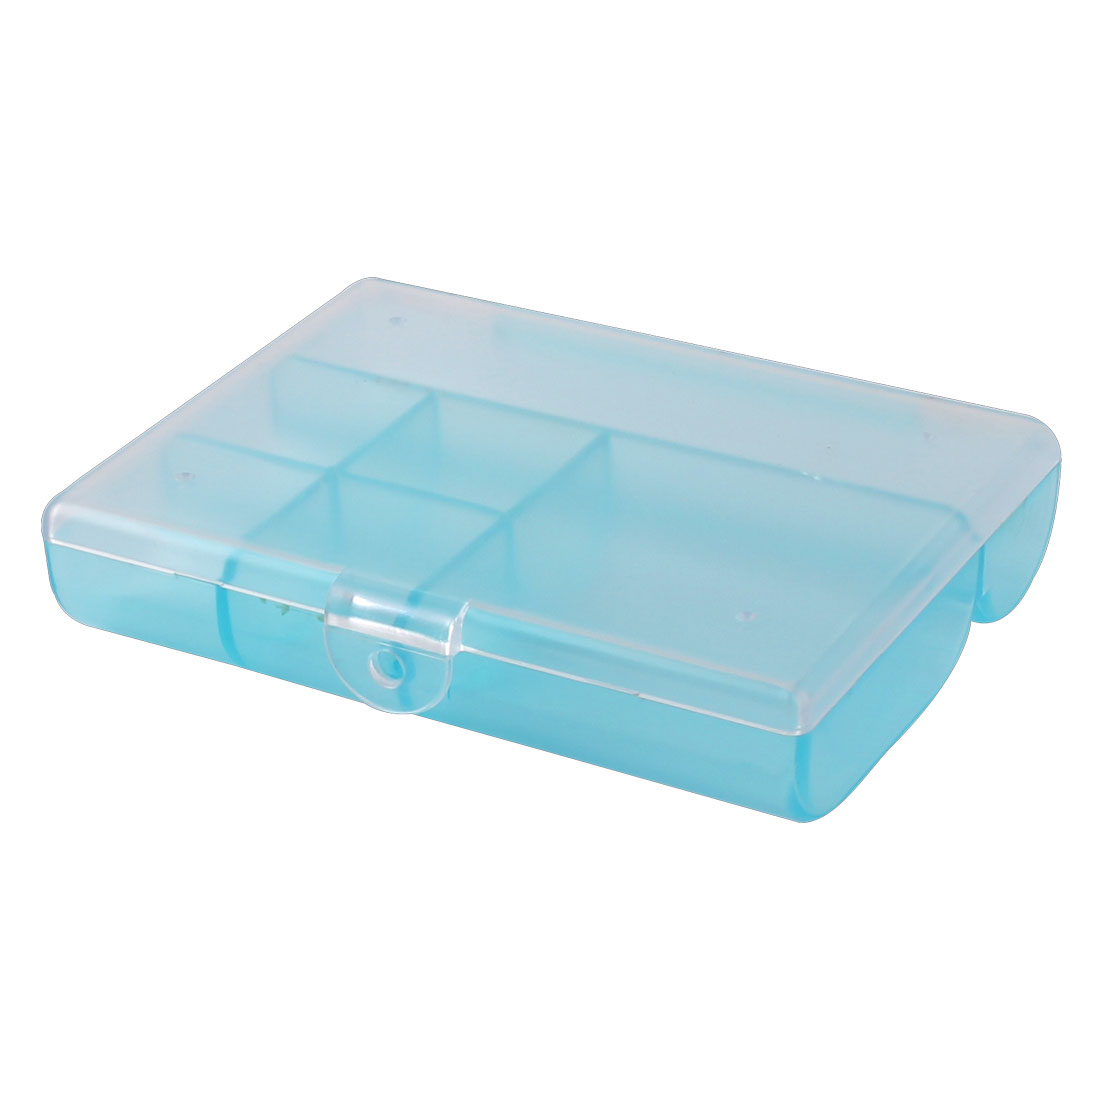 Home Plastic 6 Compartments Small Accessories Jewelry Box Organizer Holder Clear Blue